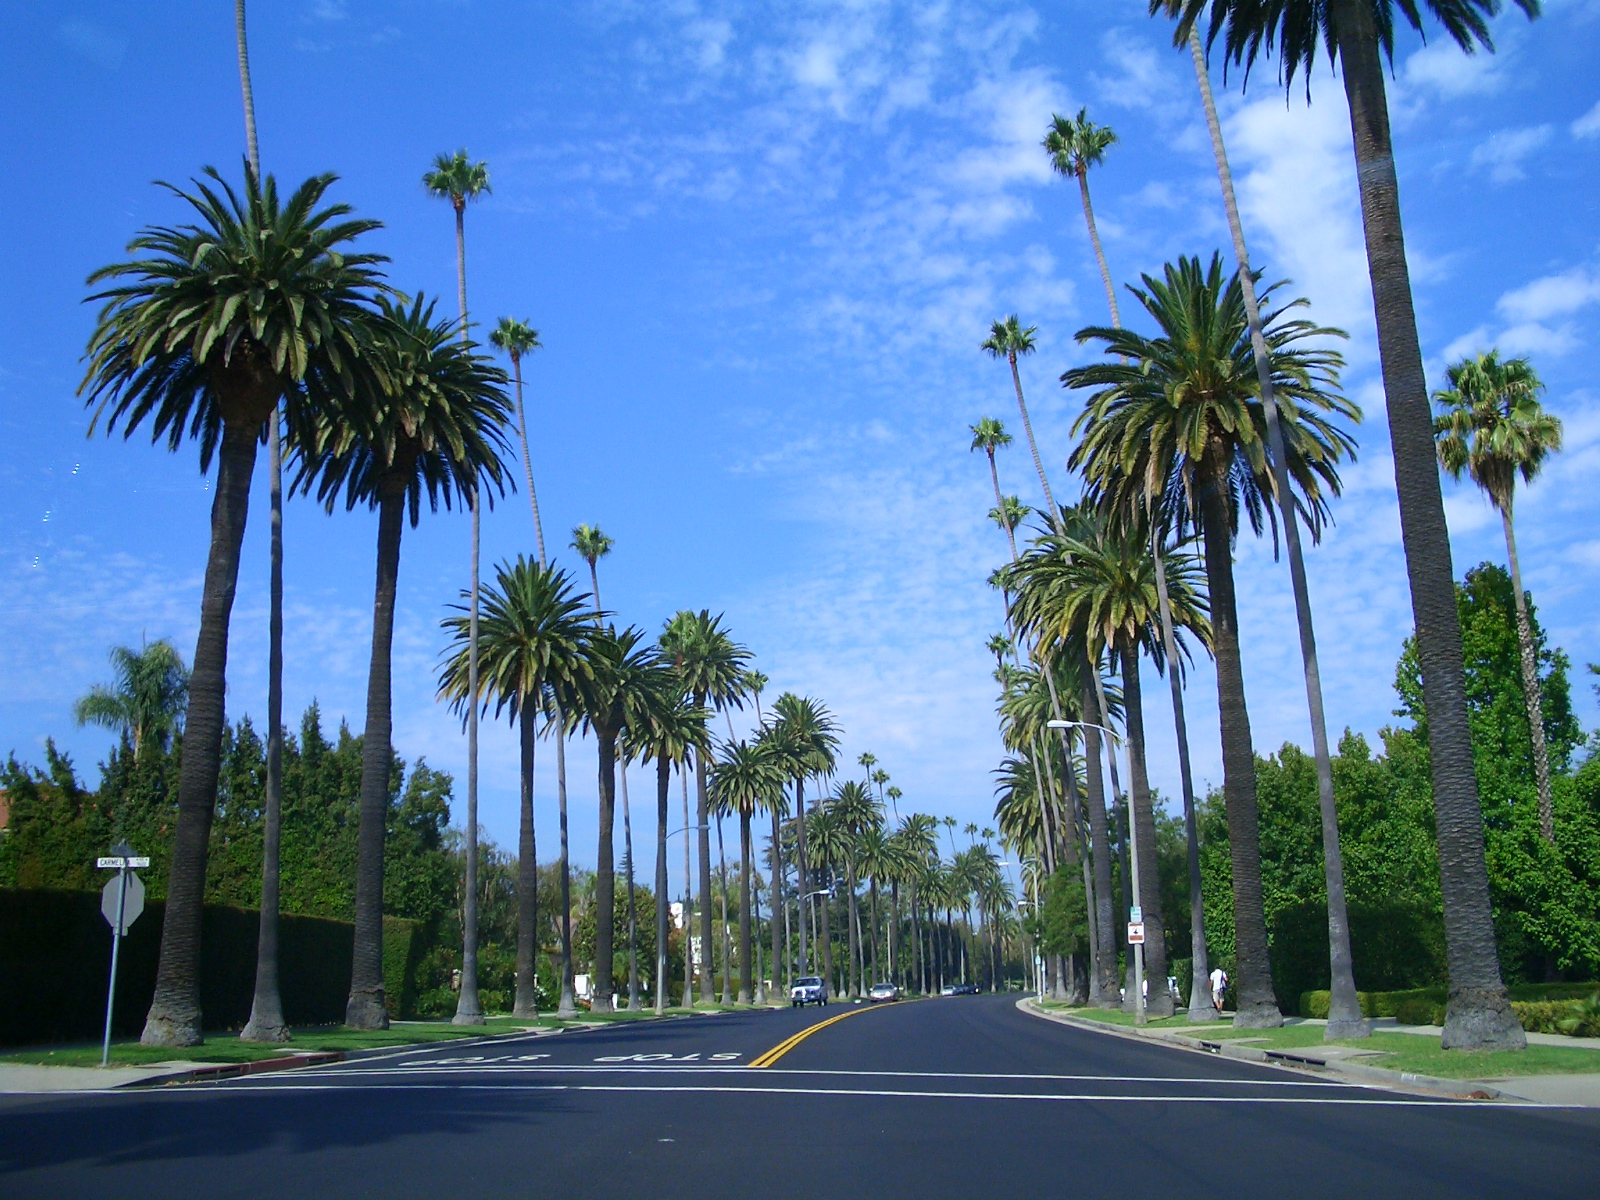 Hipster Palm Tree Wallpaperhd Wallpapers - Beverly Drive Palm Trees - HD Wallpaper